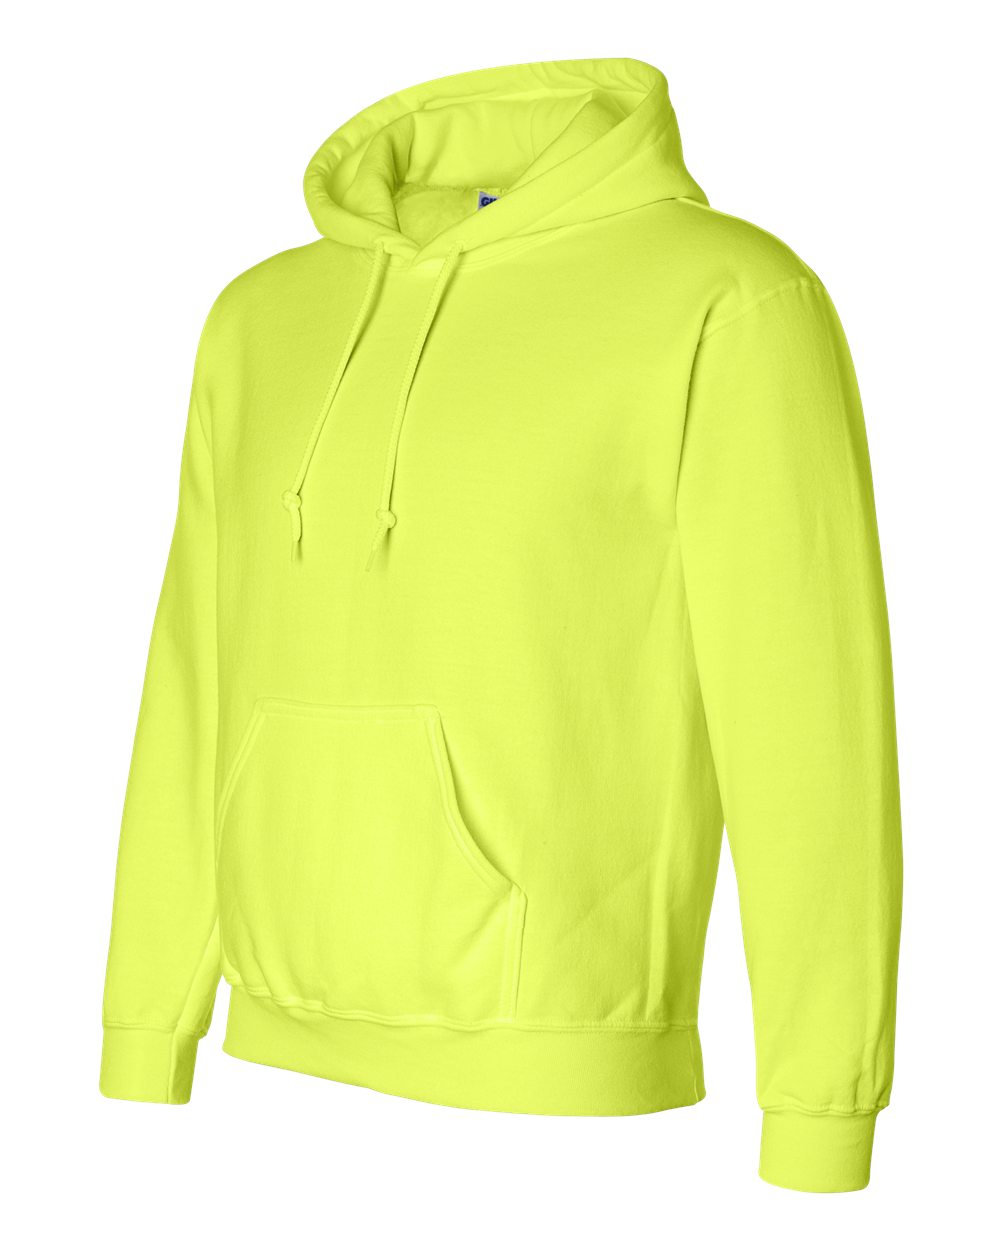 Gildan Ultra Blend Hooded sweater GIL12500 Safety Green